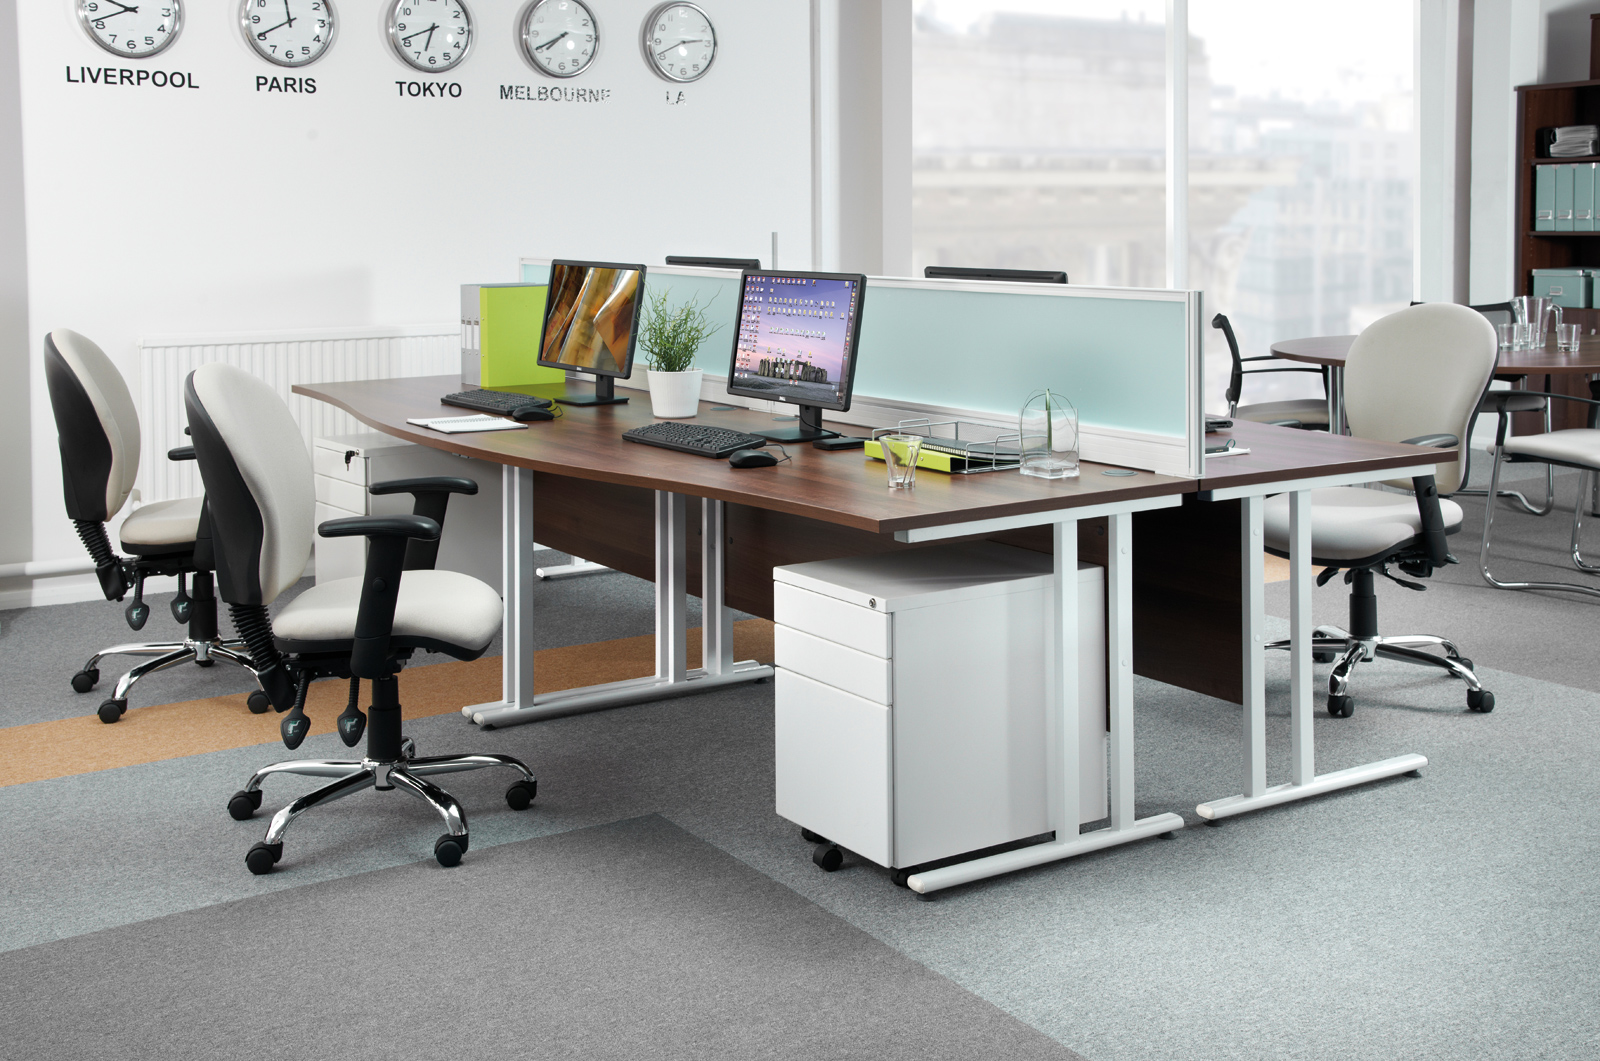 Maestro 25 straight desk 1600mm x 800mm with 2 and 3 drawer pedestals - white cantilever leg frame, white top